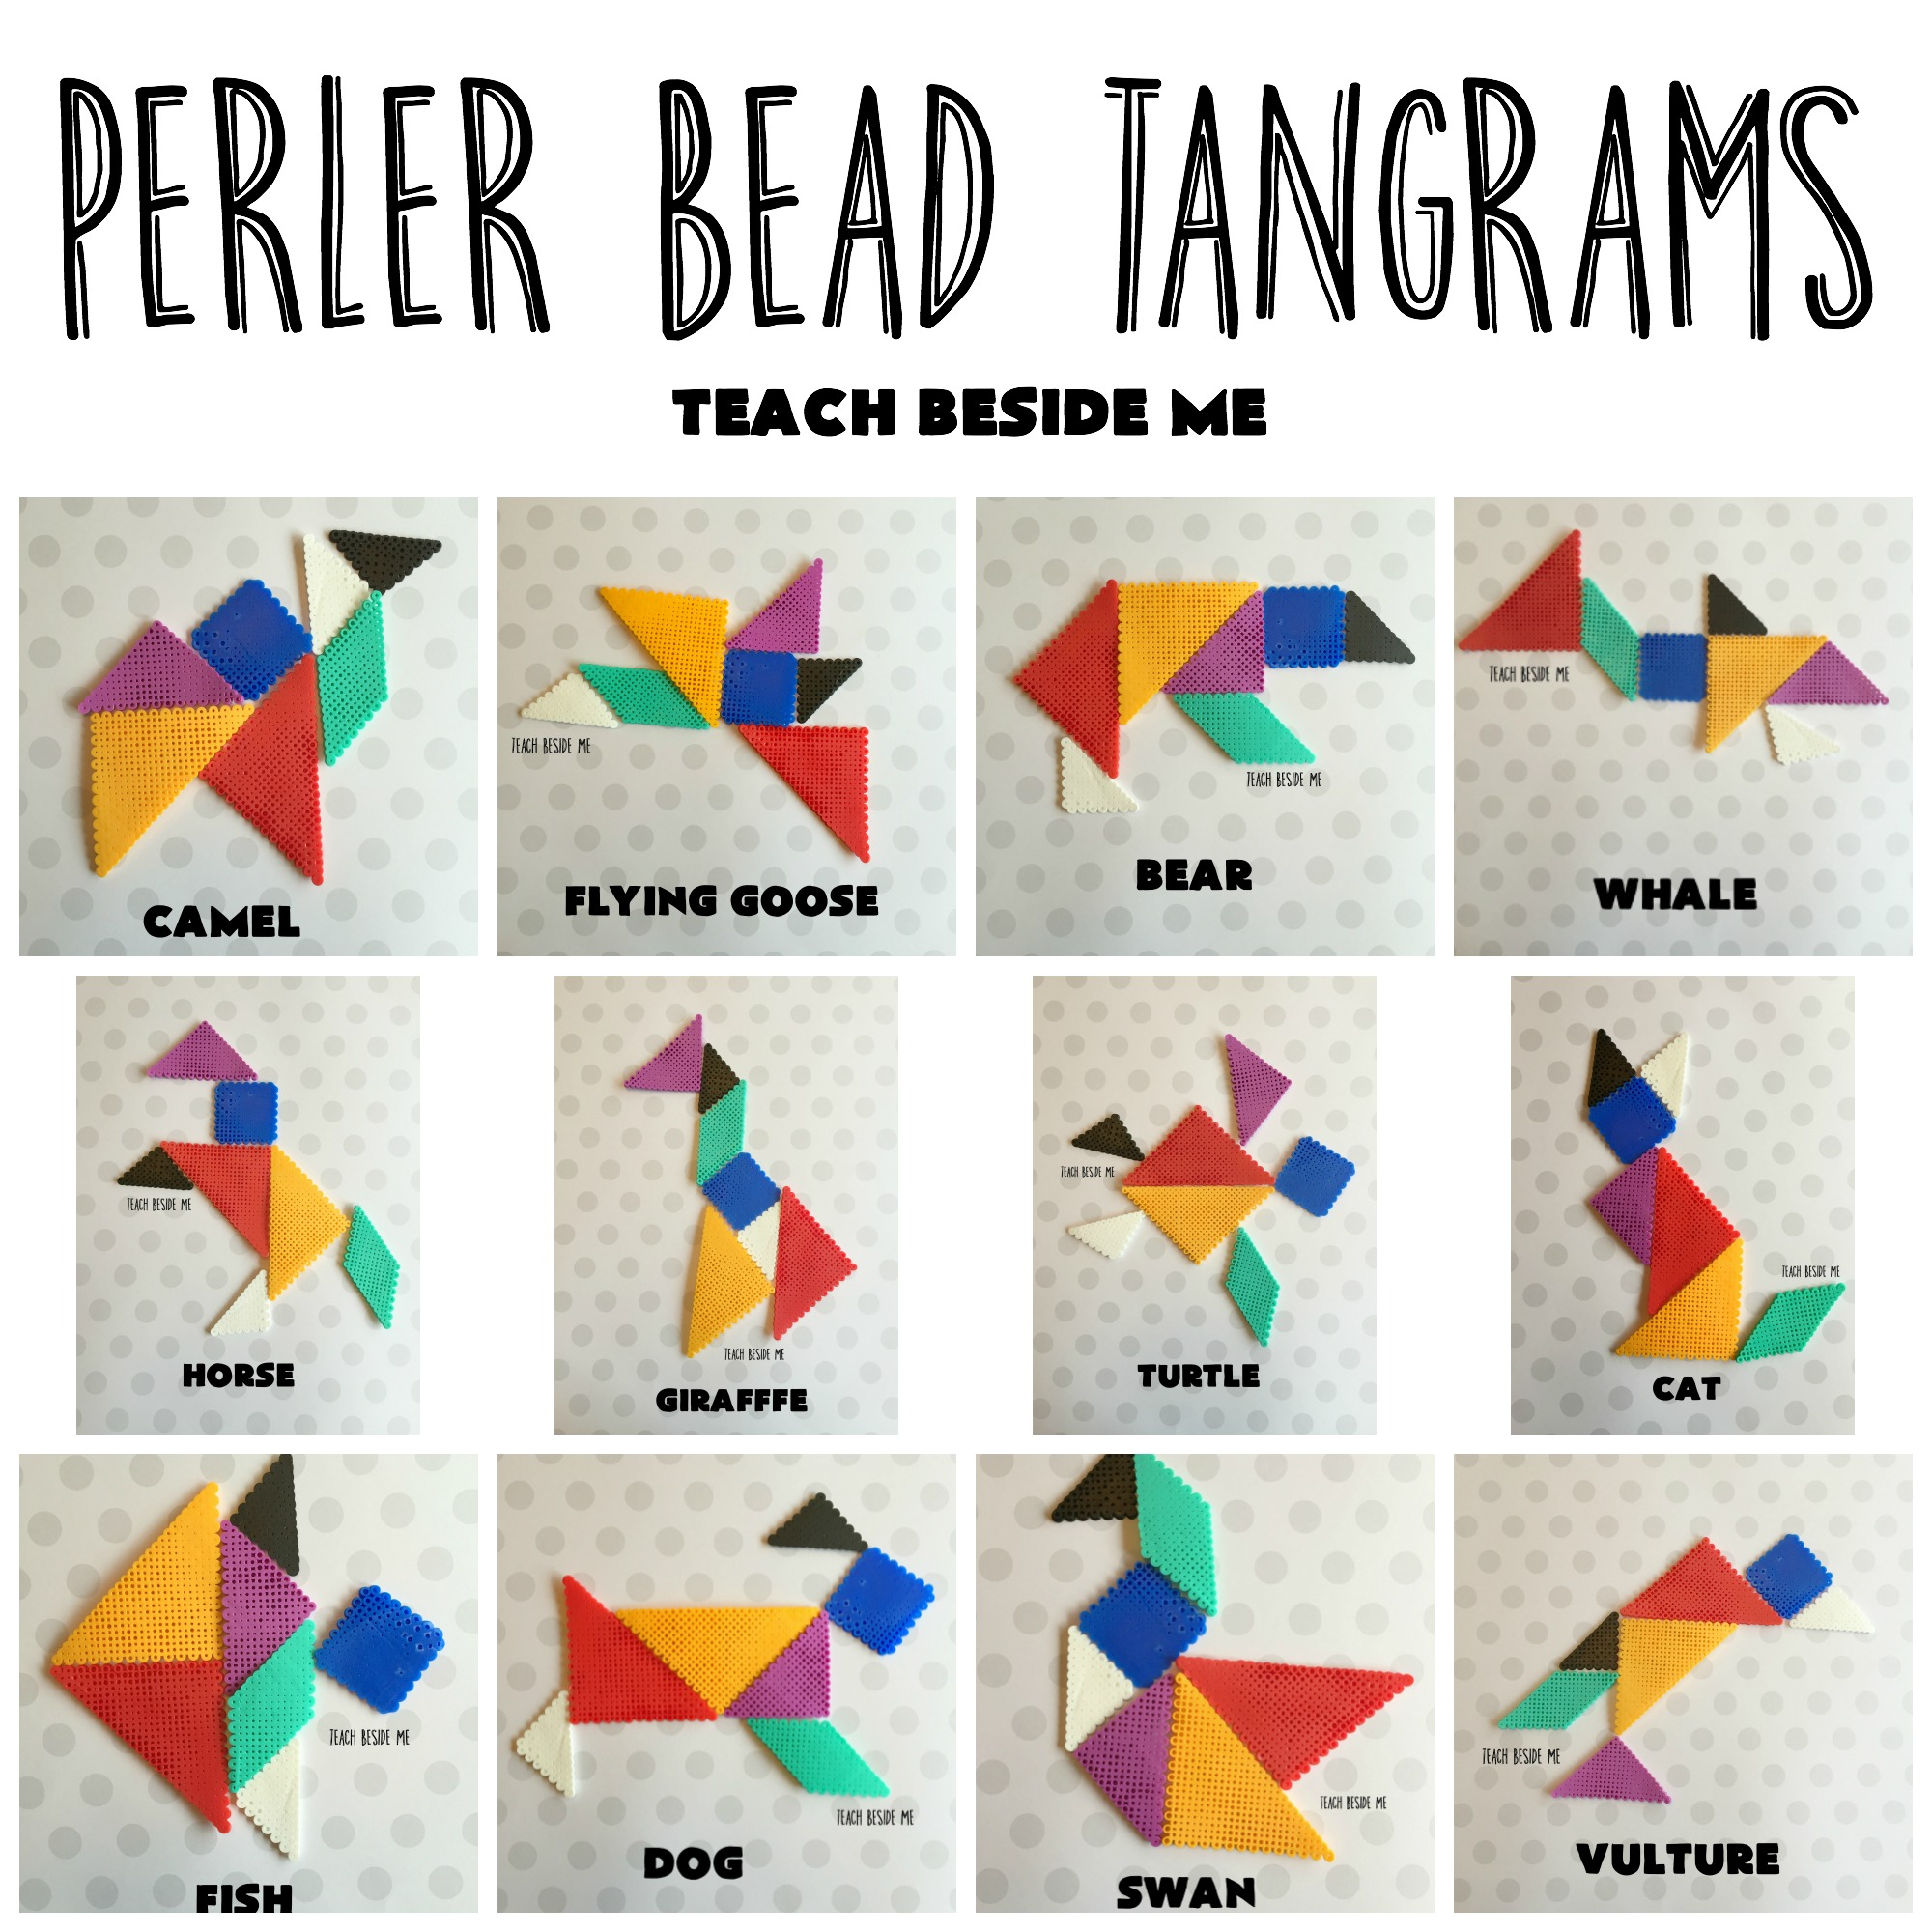 worksheet One Grain Of Rice Worksheet Answers one grain of rice math activities teach beside me how to make a geoboard perler bead tangrams